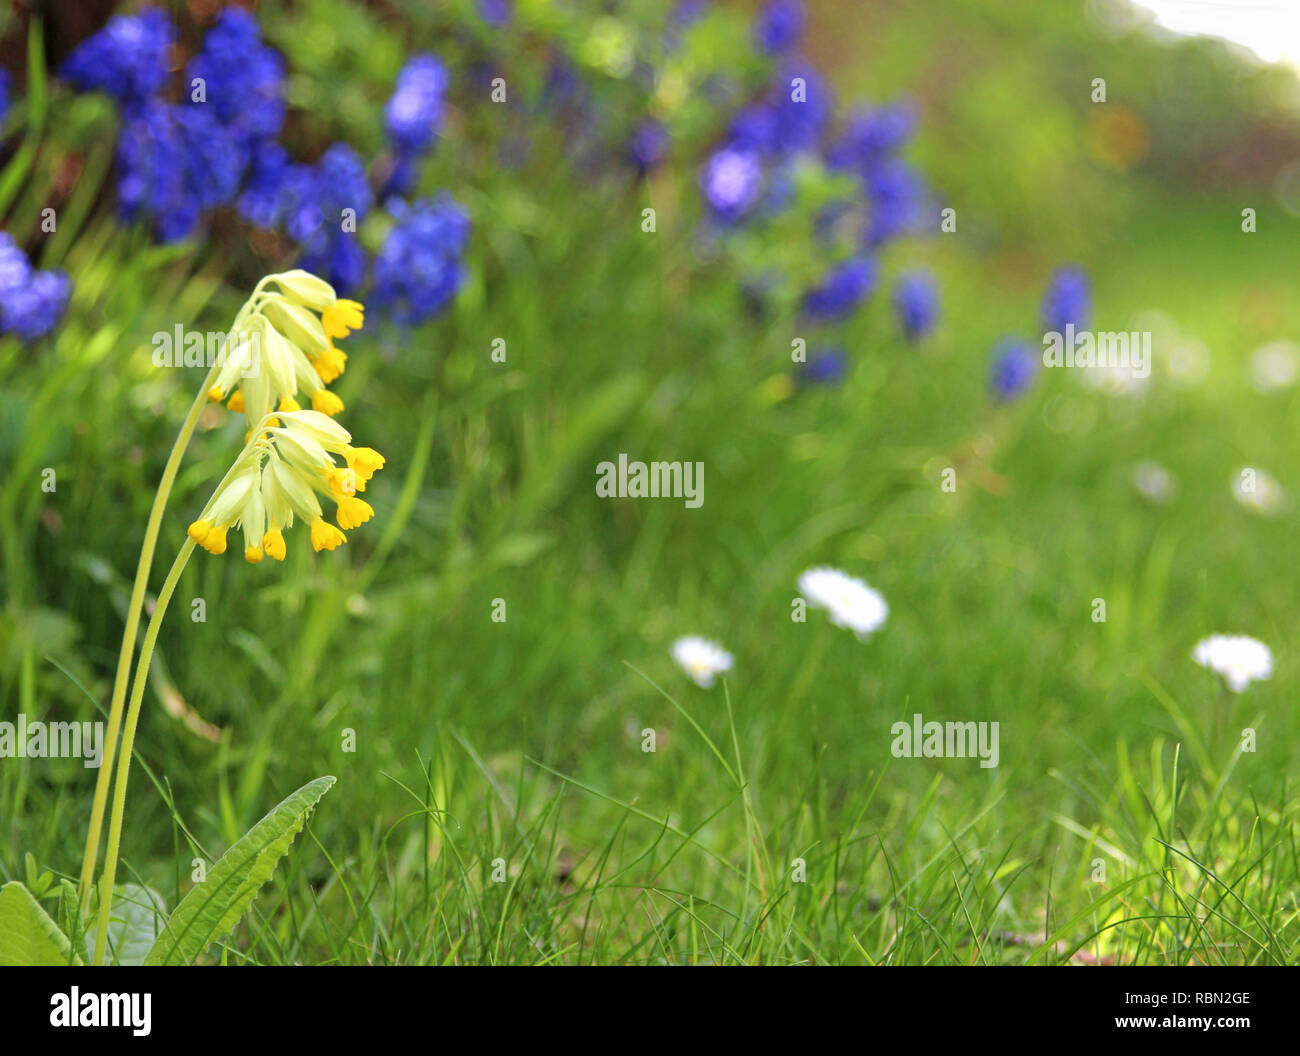 garden with cowslip in the foreground - Stock Image